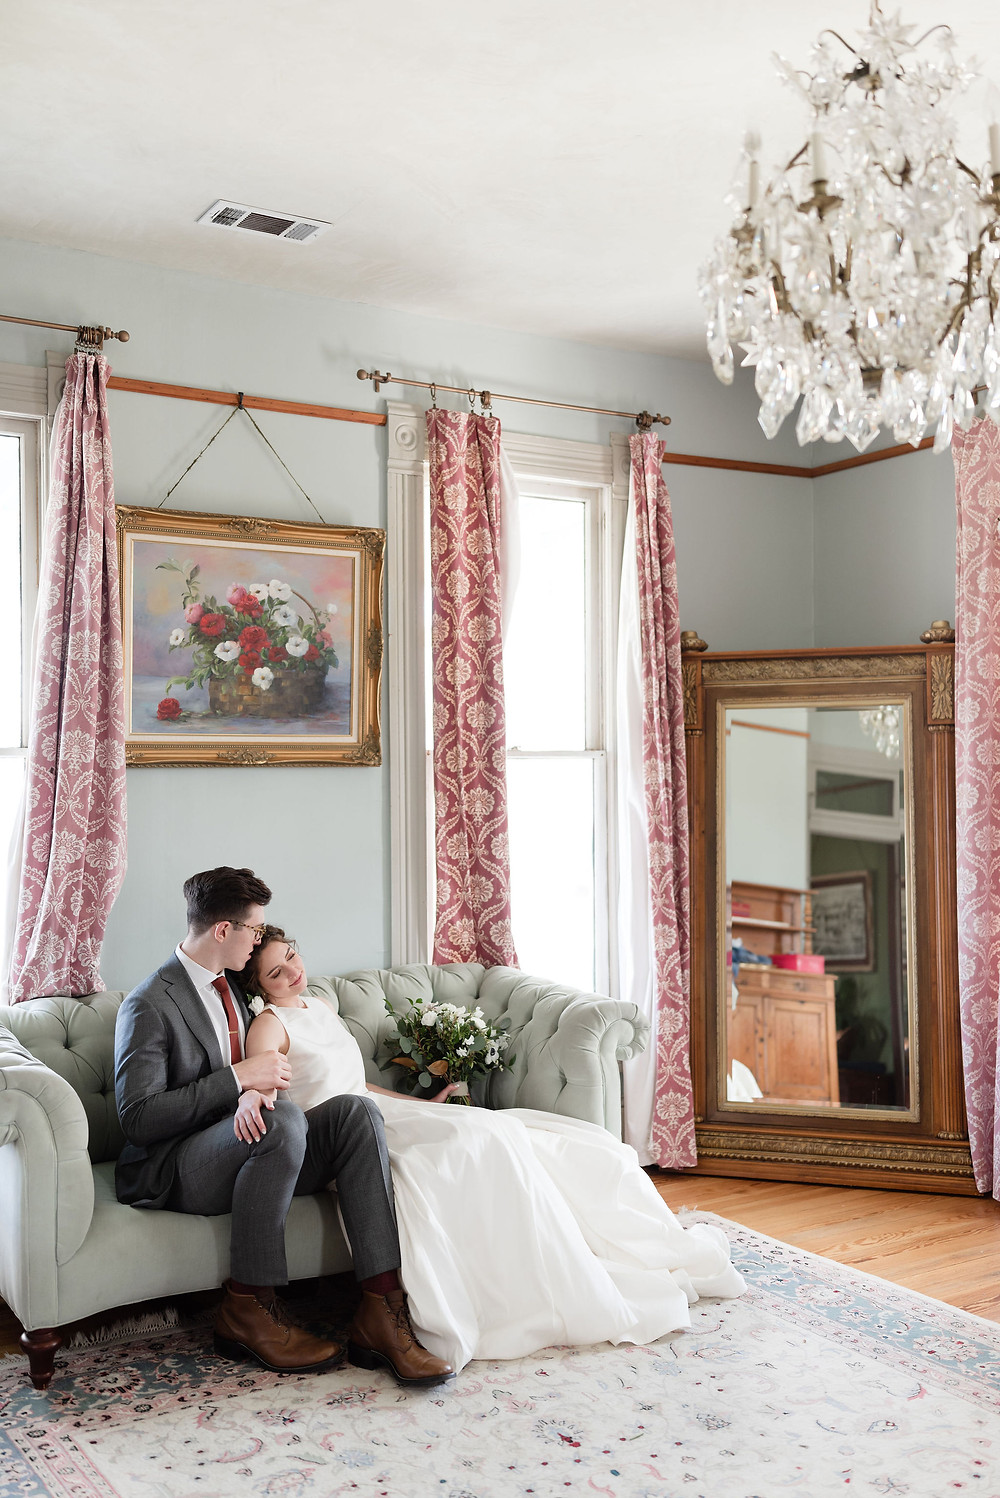 bride and groom sitting on a couch for their wedding photos. the couch is inside the bridal suite at the wedding venue barr mansion